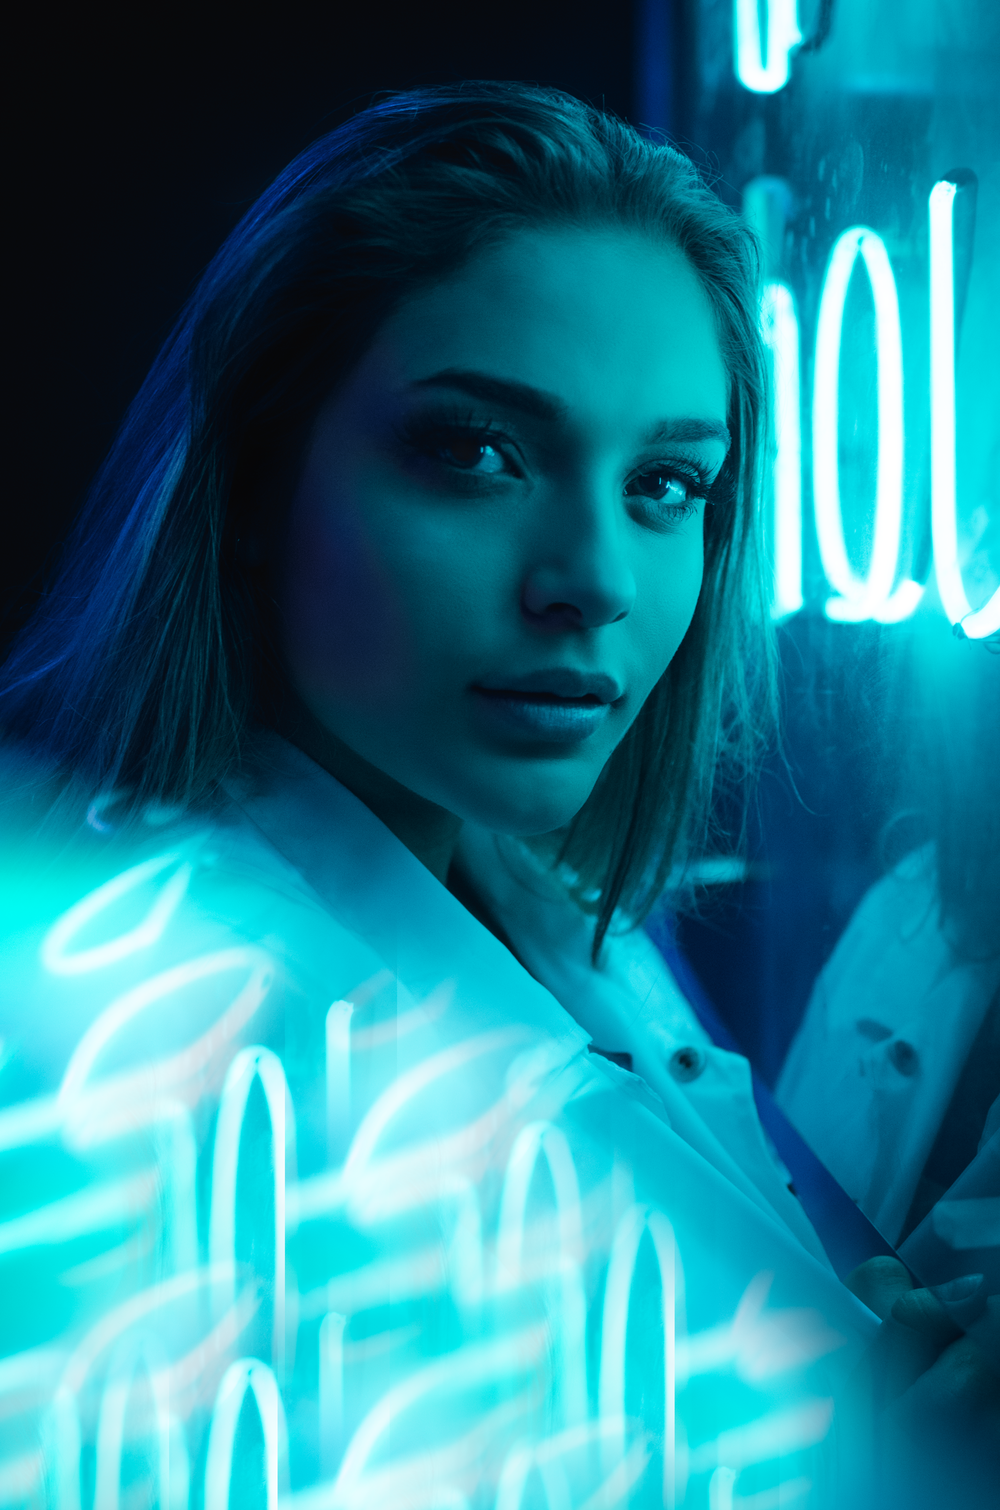 closeup photo of woman near neon light signage